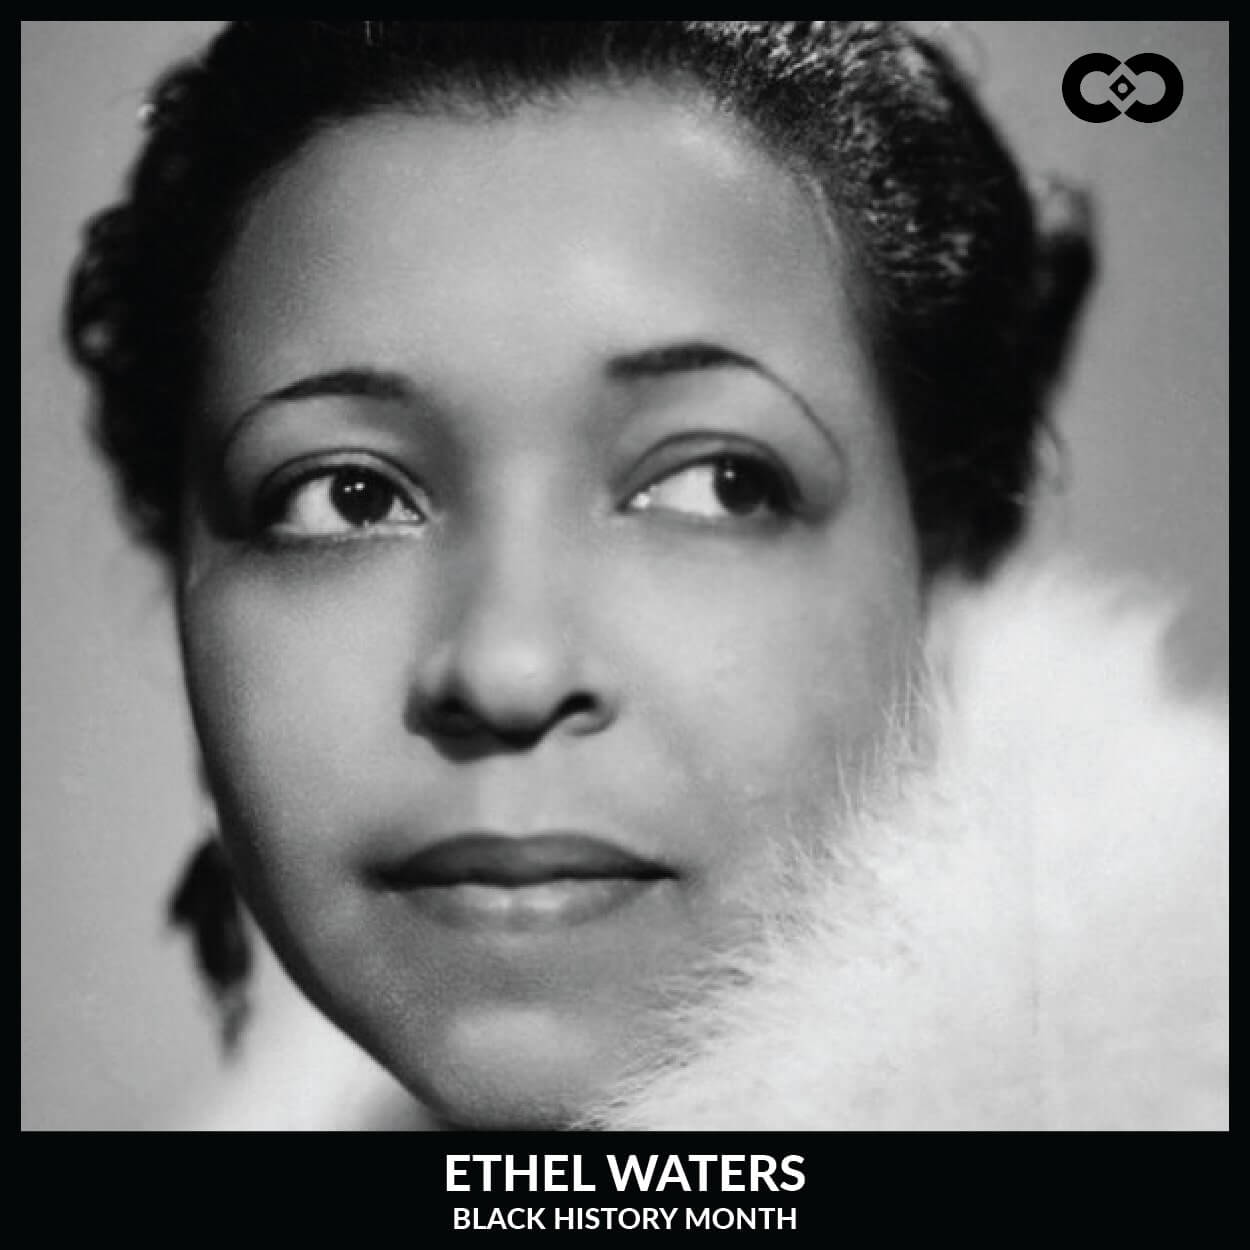 Ethel Waters - Black History Month: Powerful Women Who Changed the World - Cowe Communications